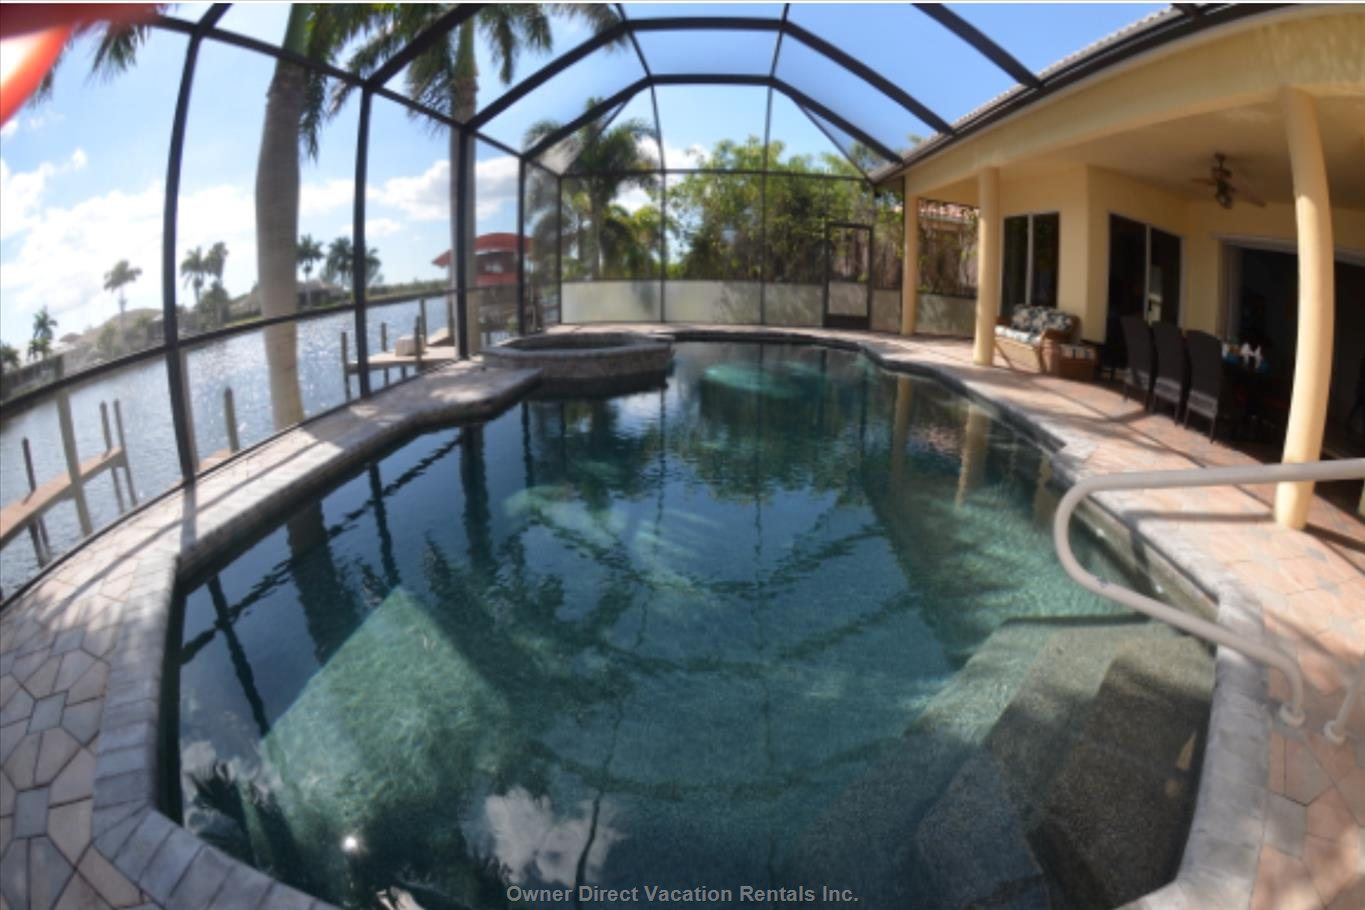 Vacation Rentals by Owner in Cape Coral | Owner Direct